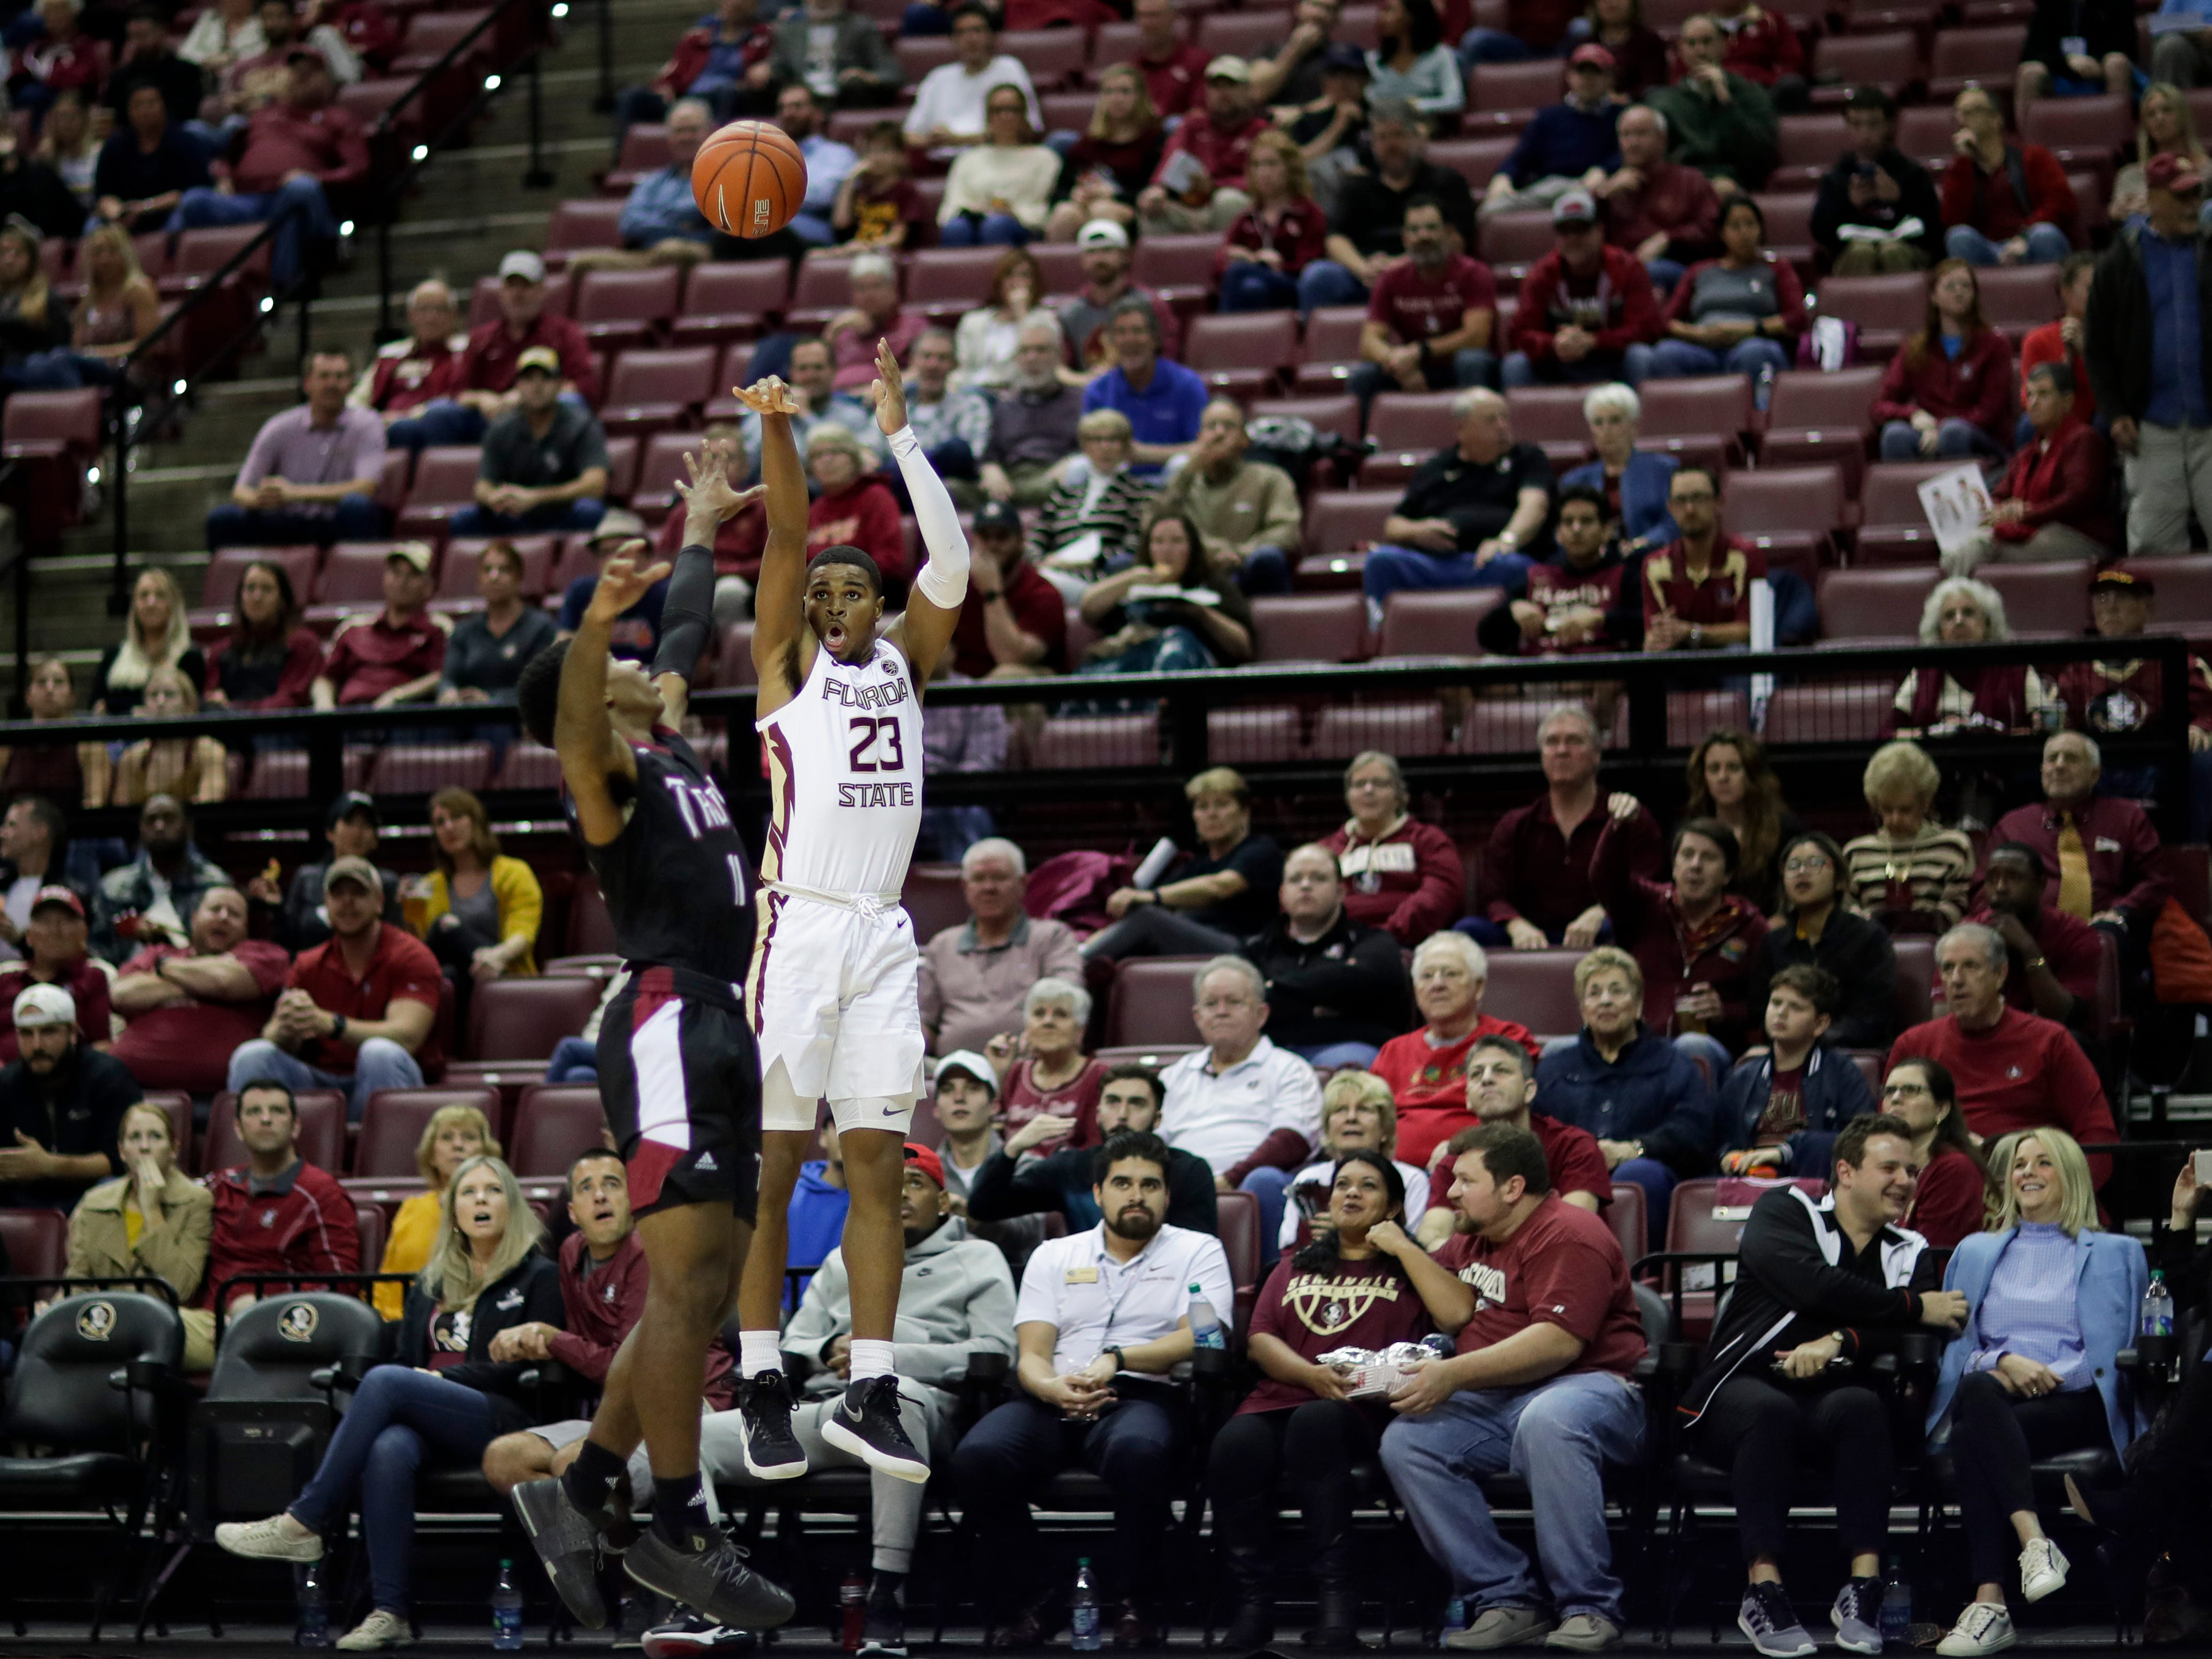 Florida State Seminoles guard M.J. Walker (23) shoots a three during a game between FSU and Troy University at Donald L. Tucker Civic Center Monday, Dec. 3, 2018.